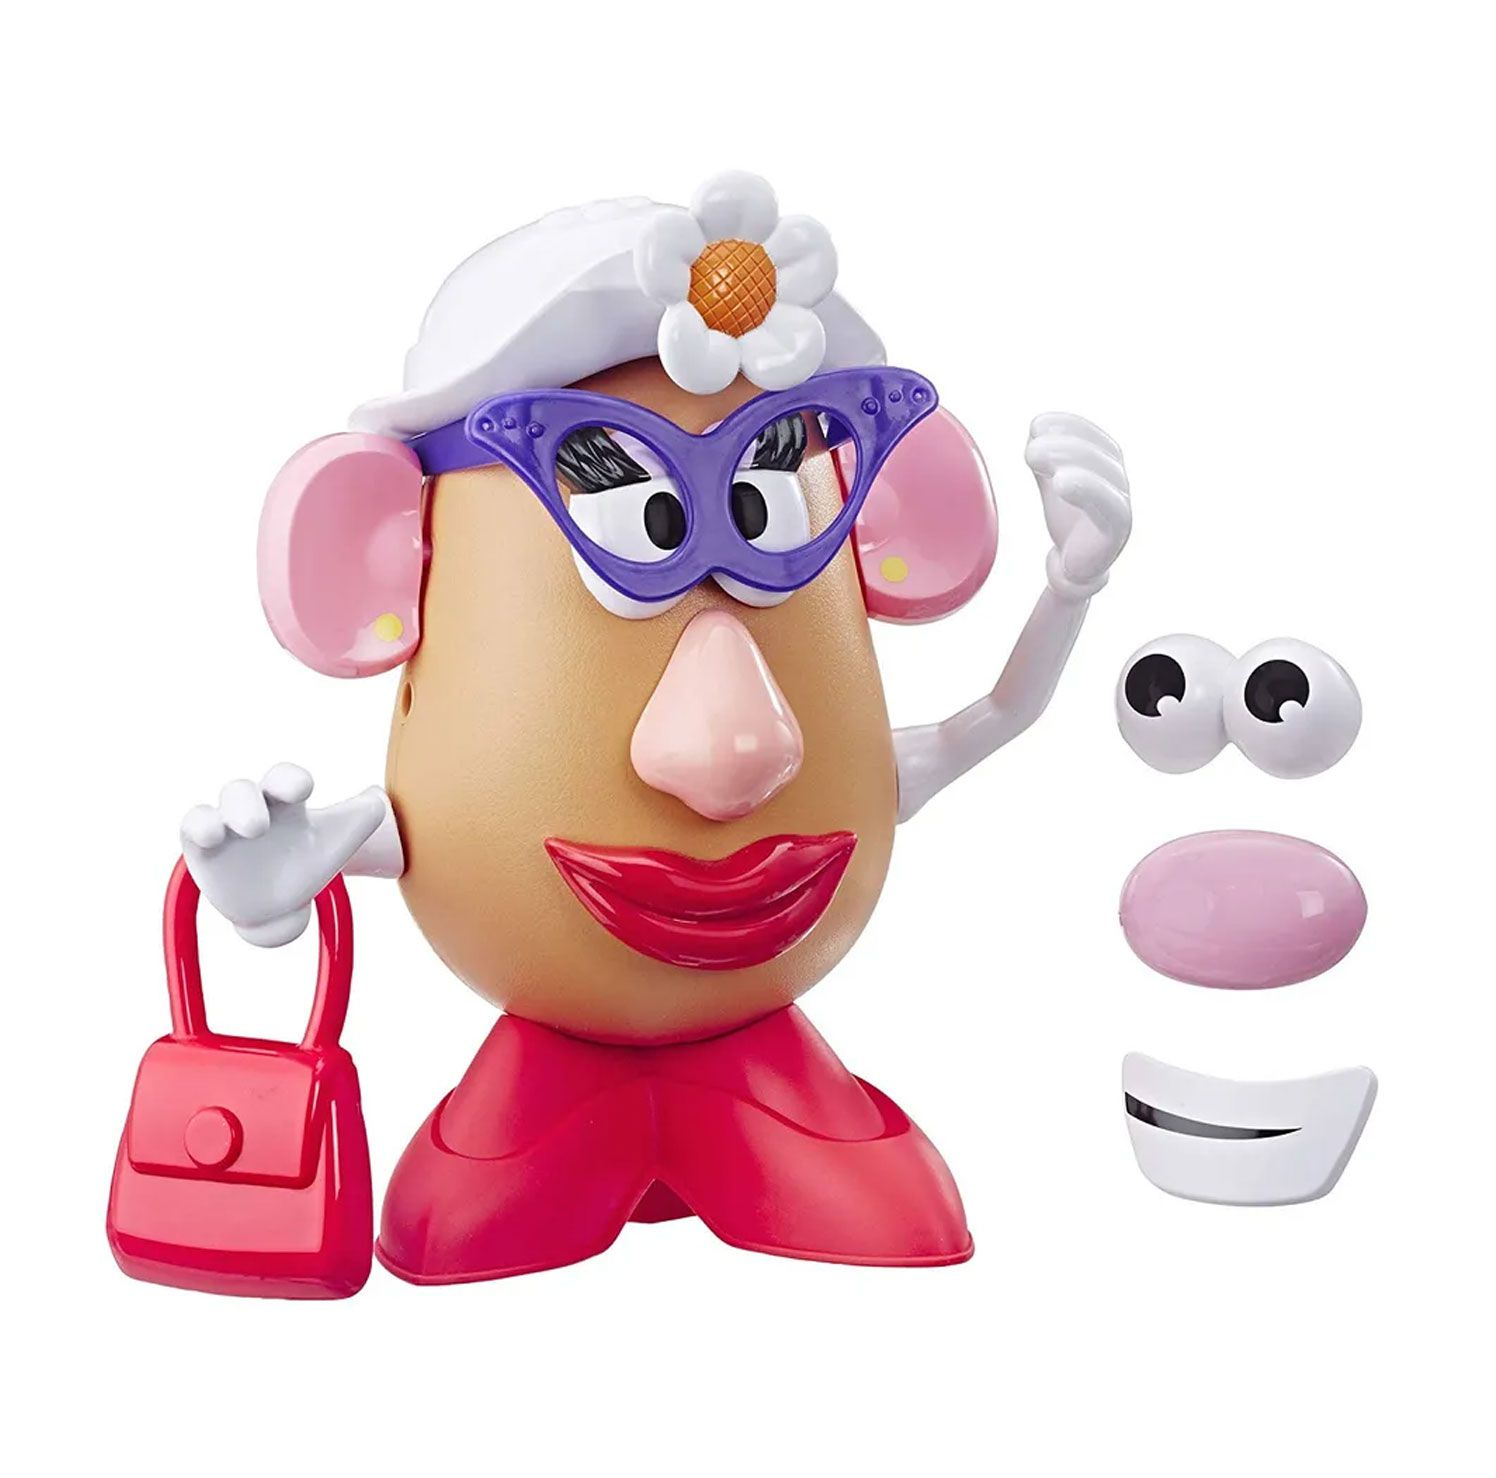 BONECO SENHORA MR POTATO HEAD TOY STORY 4 HASBRO REF:3069